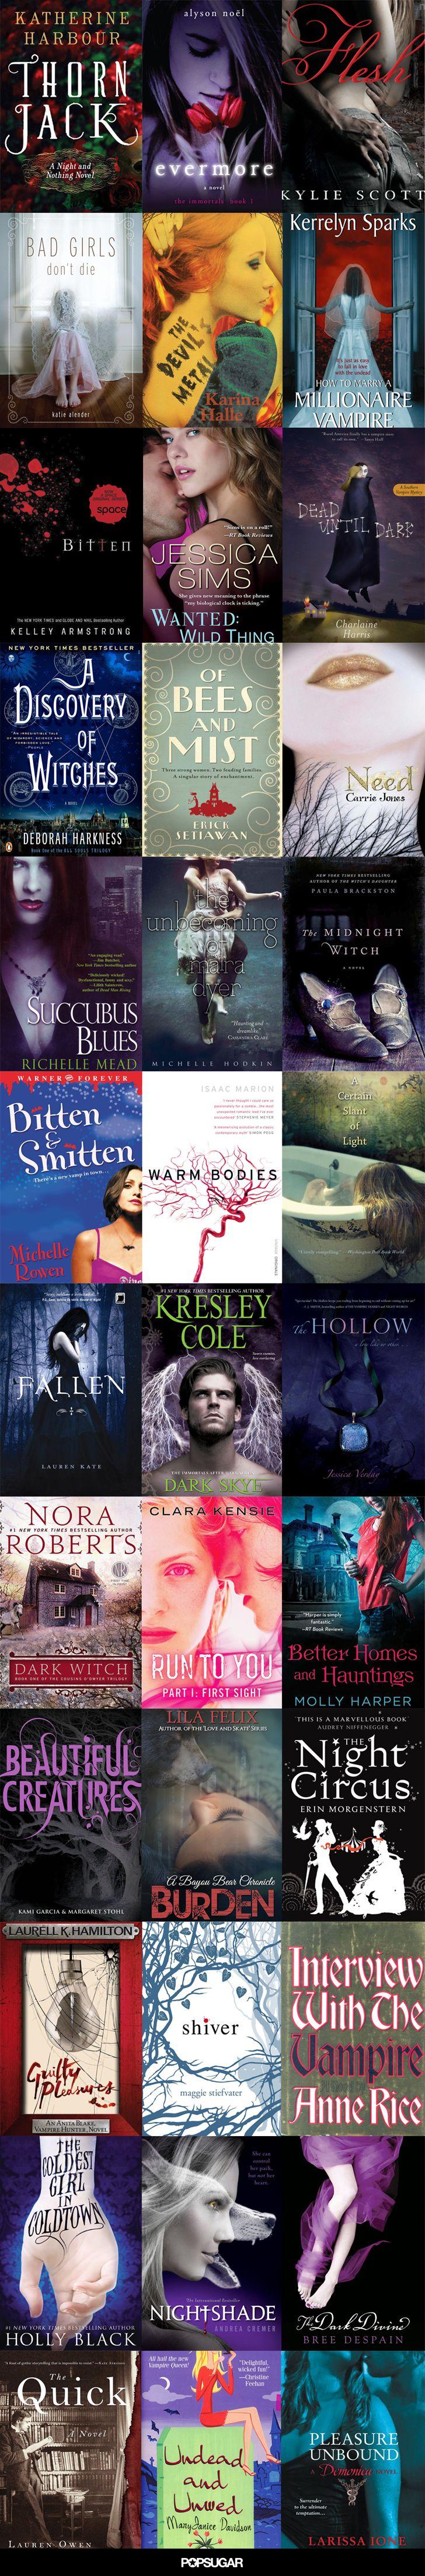 When the nights grow dark and the wolves begin to howl, there's nothing quite like curling up in front of the fire with a spooky romance novel. If vampires, werewolves, ghosts, and ghouls excite you, then these frighteningly sexy paranormal novels are the perfect reads for your Fall pleasure.